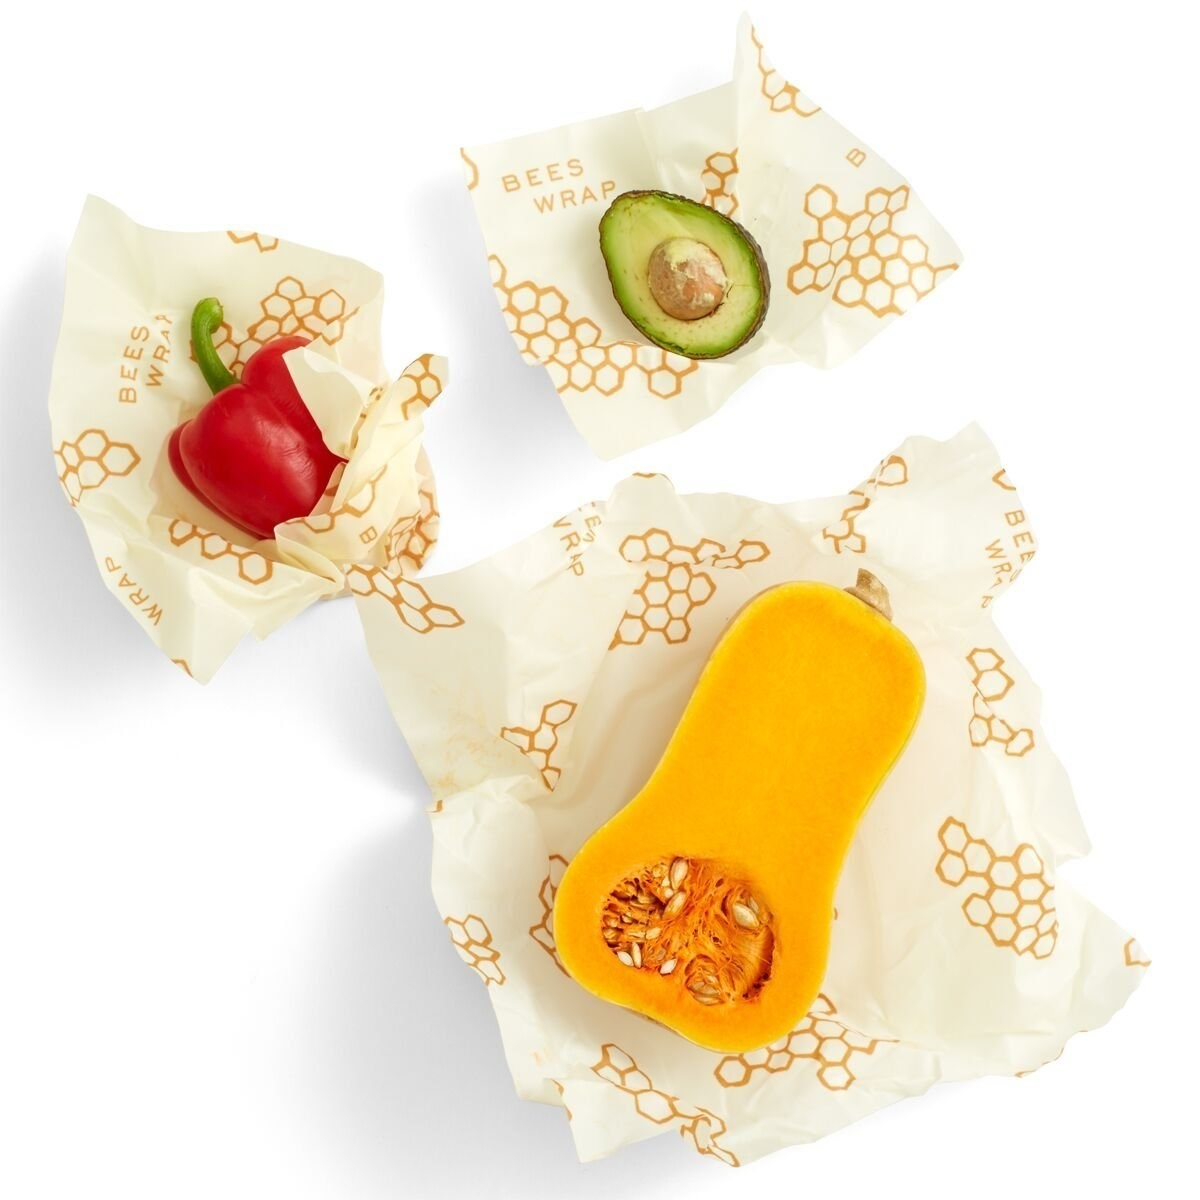 The beeswax wrap opened to reveal half of each of a butternut squash, a red bell pepper, and an avocado